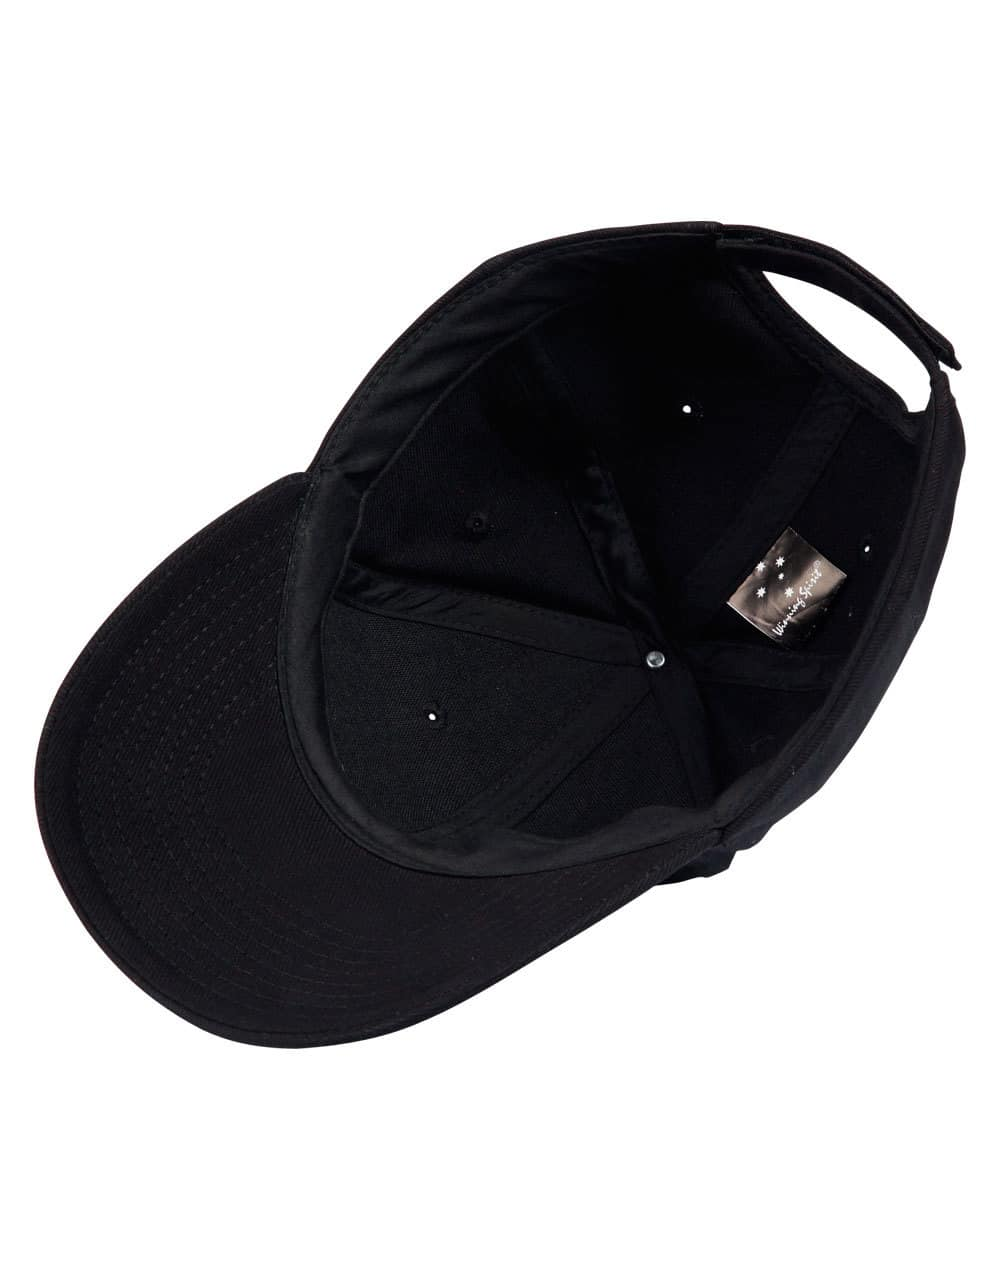 product image 19